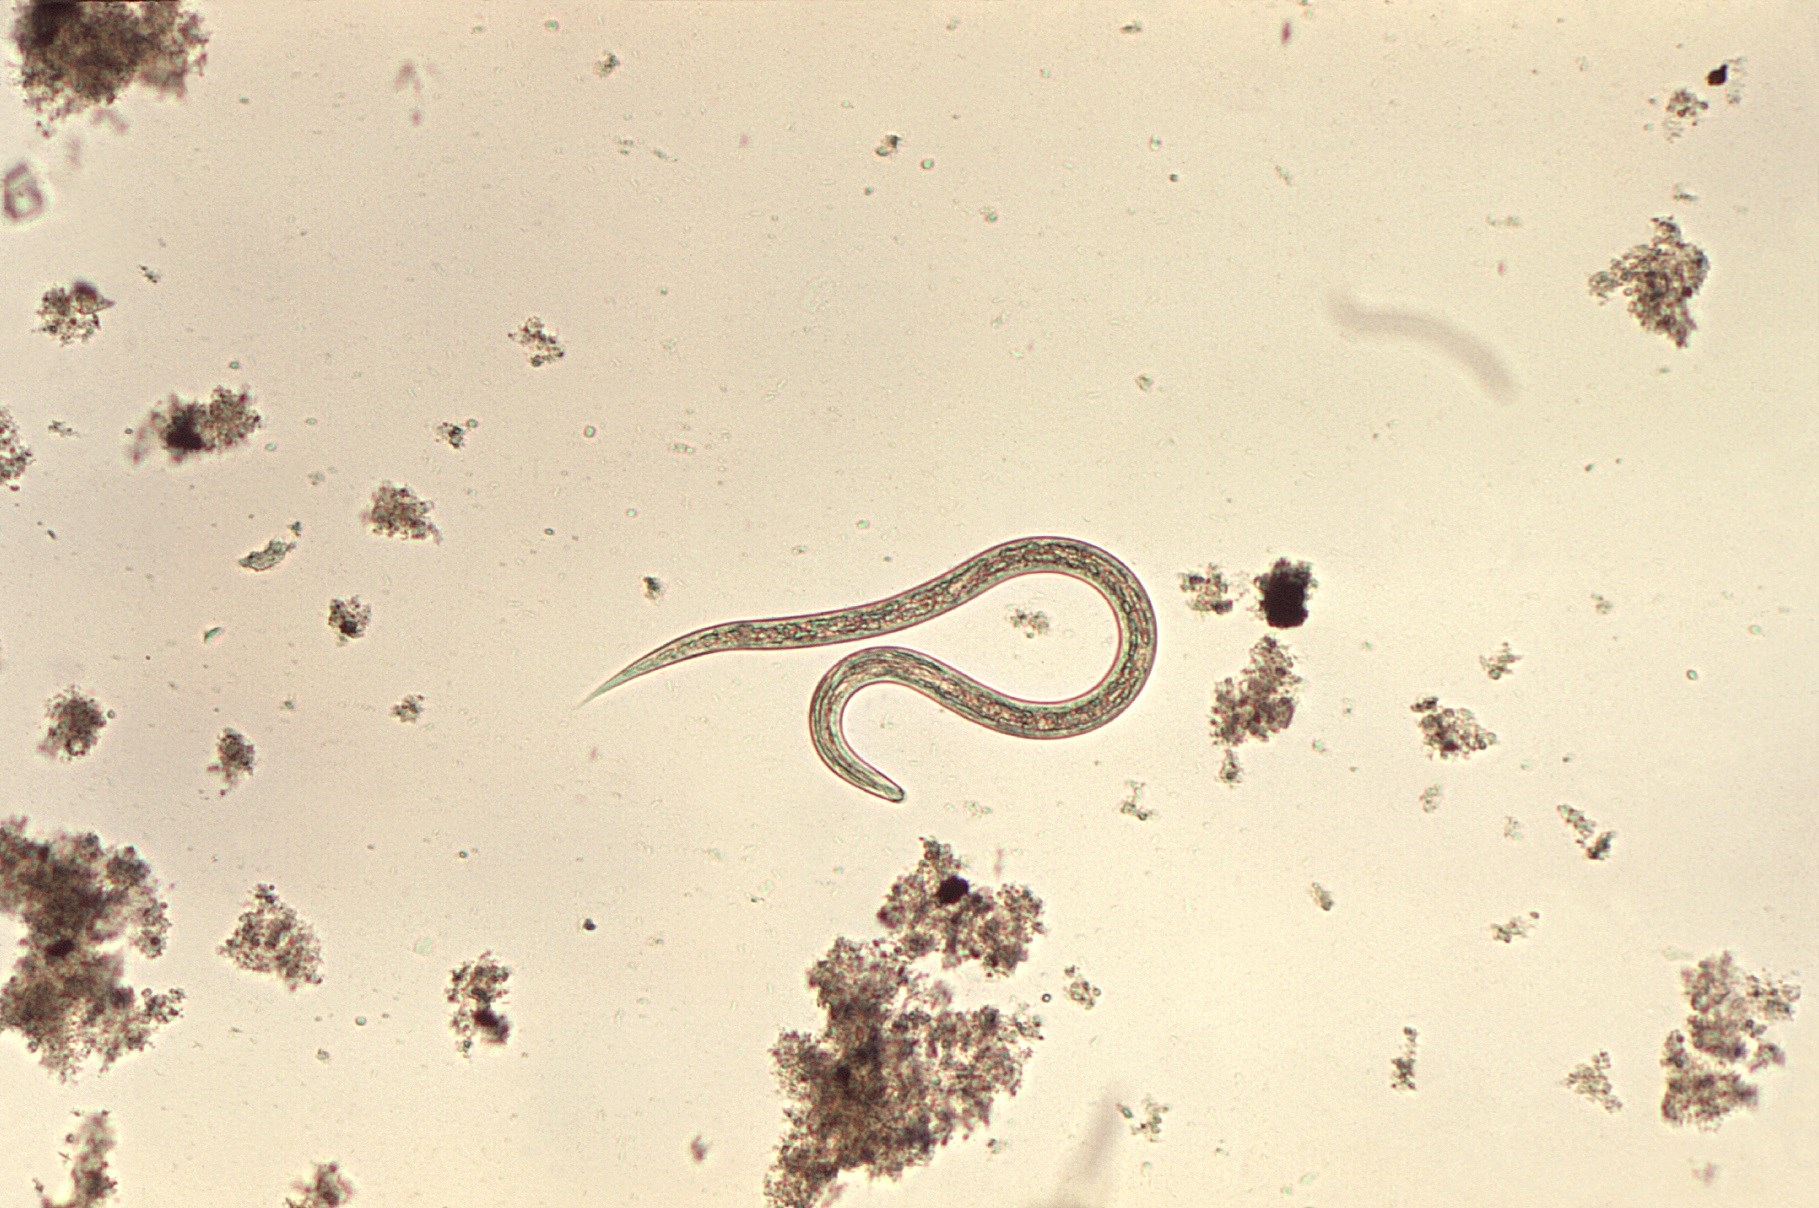 Safety of Escalating Doses of Tribendimidine in Children With Hookworm